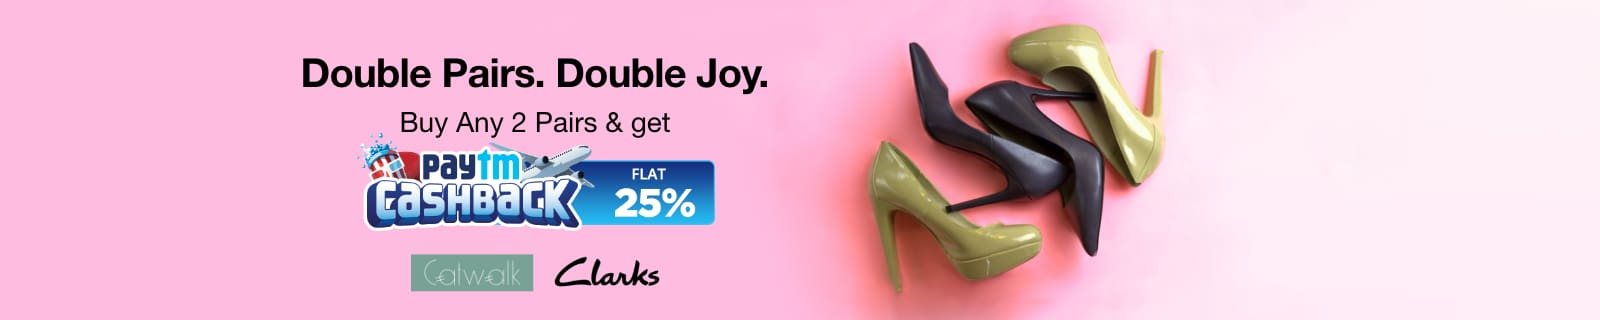 Women Footwear | Flat 25% Cash Back